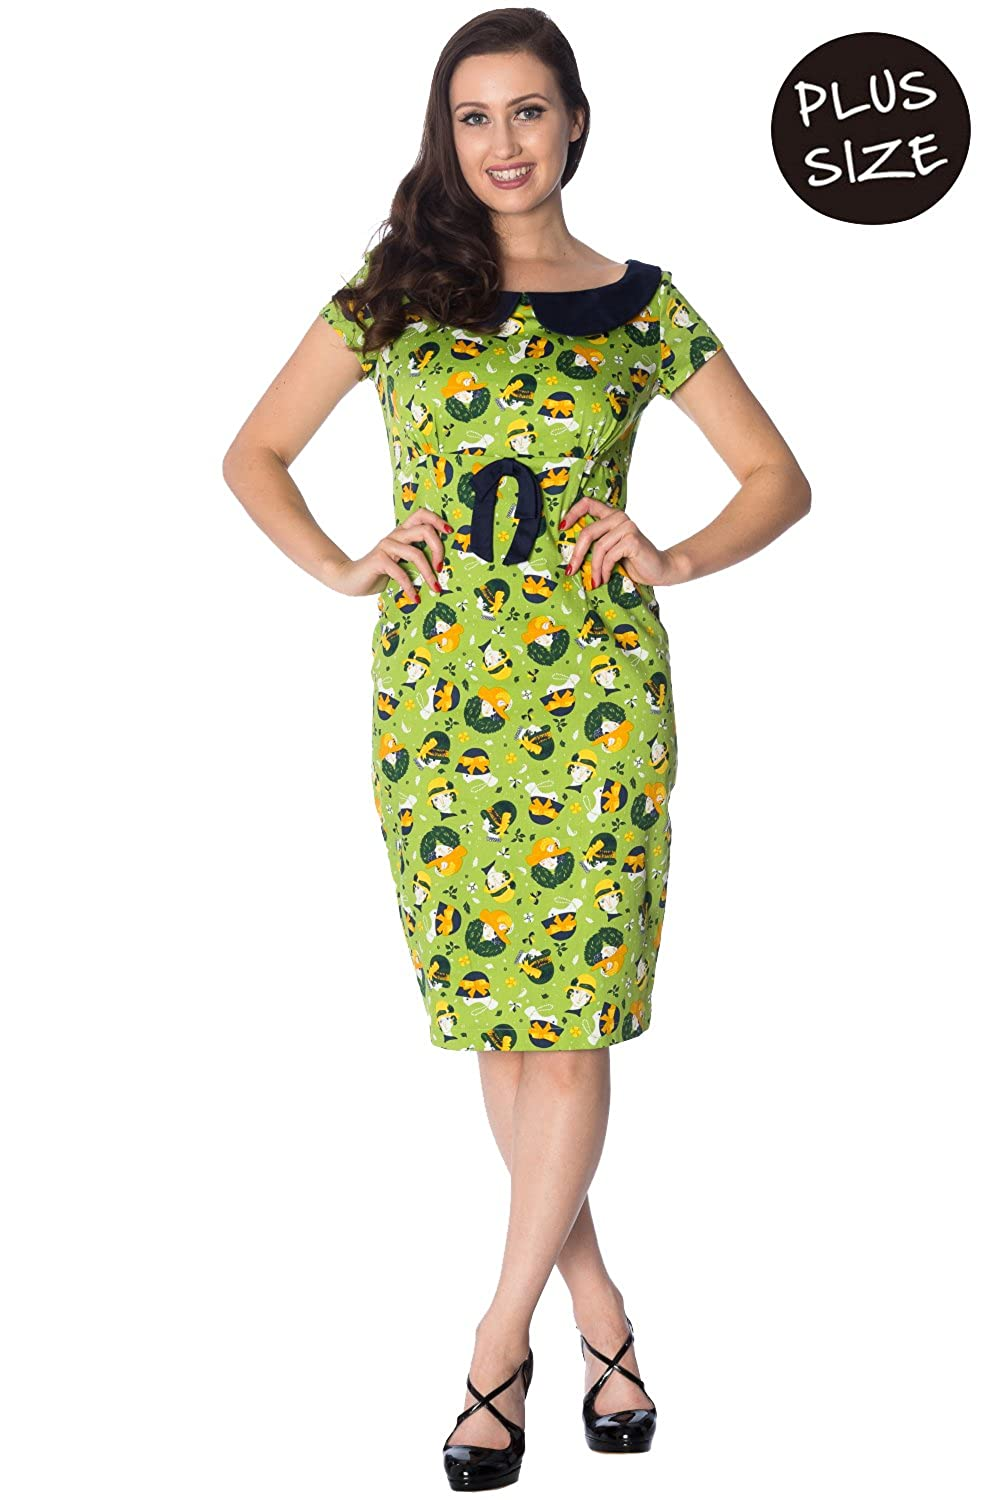 Banned Plus Size Vintage Hat Fifties 50s Retro Wiggle Dress ...